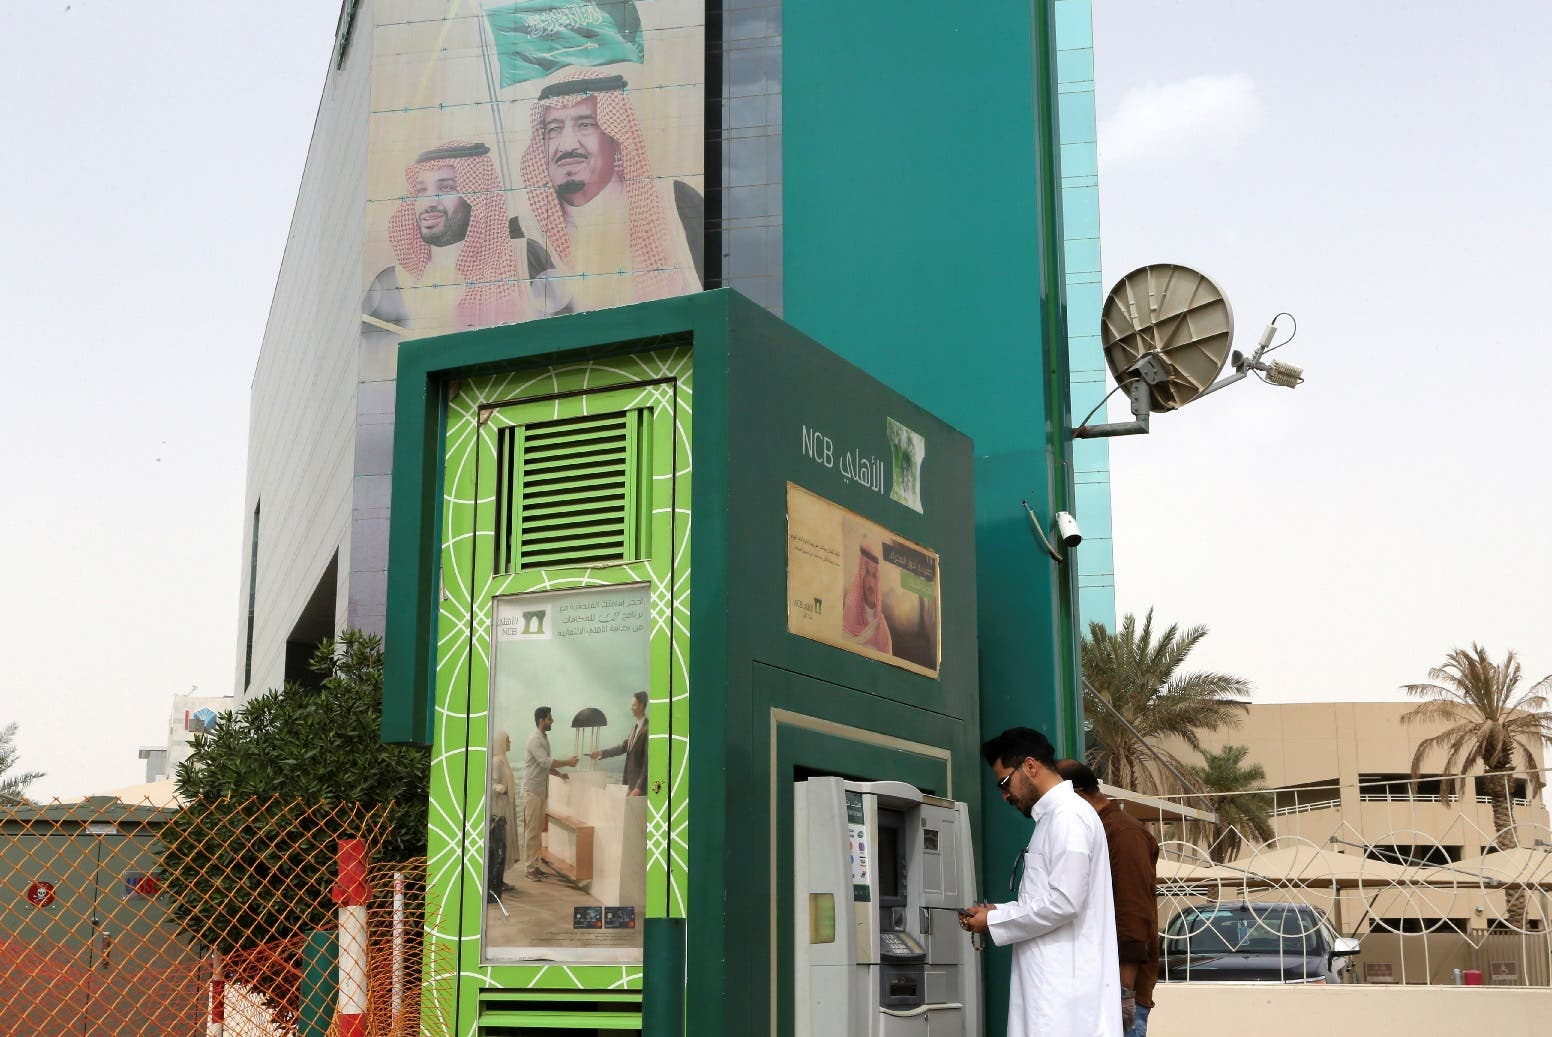 A man withdraws money from an ATM outside the Saudi National Commercial Bank (NCB), after an outbreak of coronavirus, in Riyadh, Saudi Arabia, March 18, 2020. (Reuters)